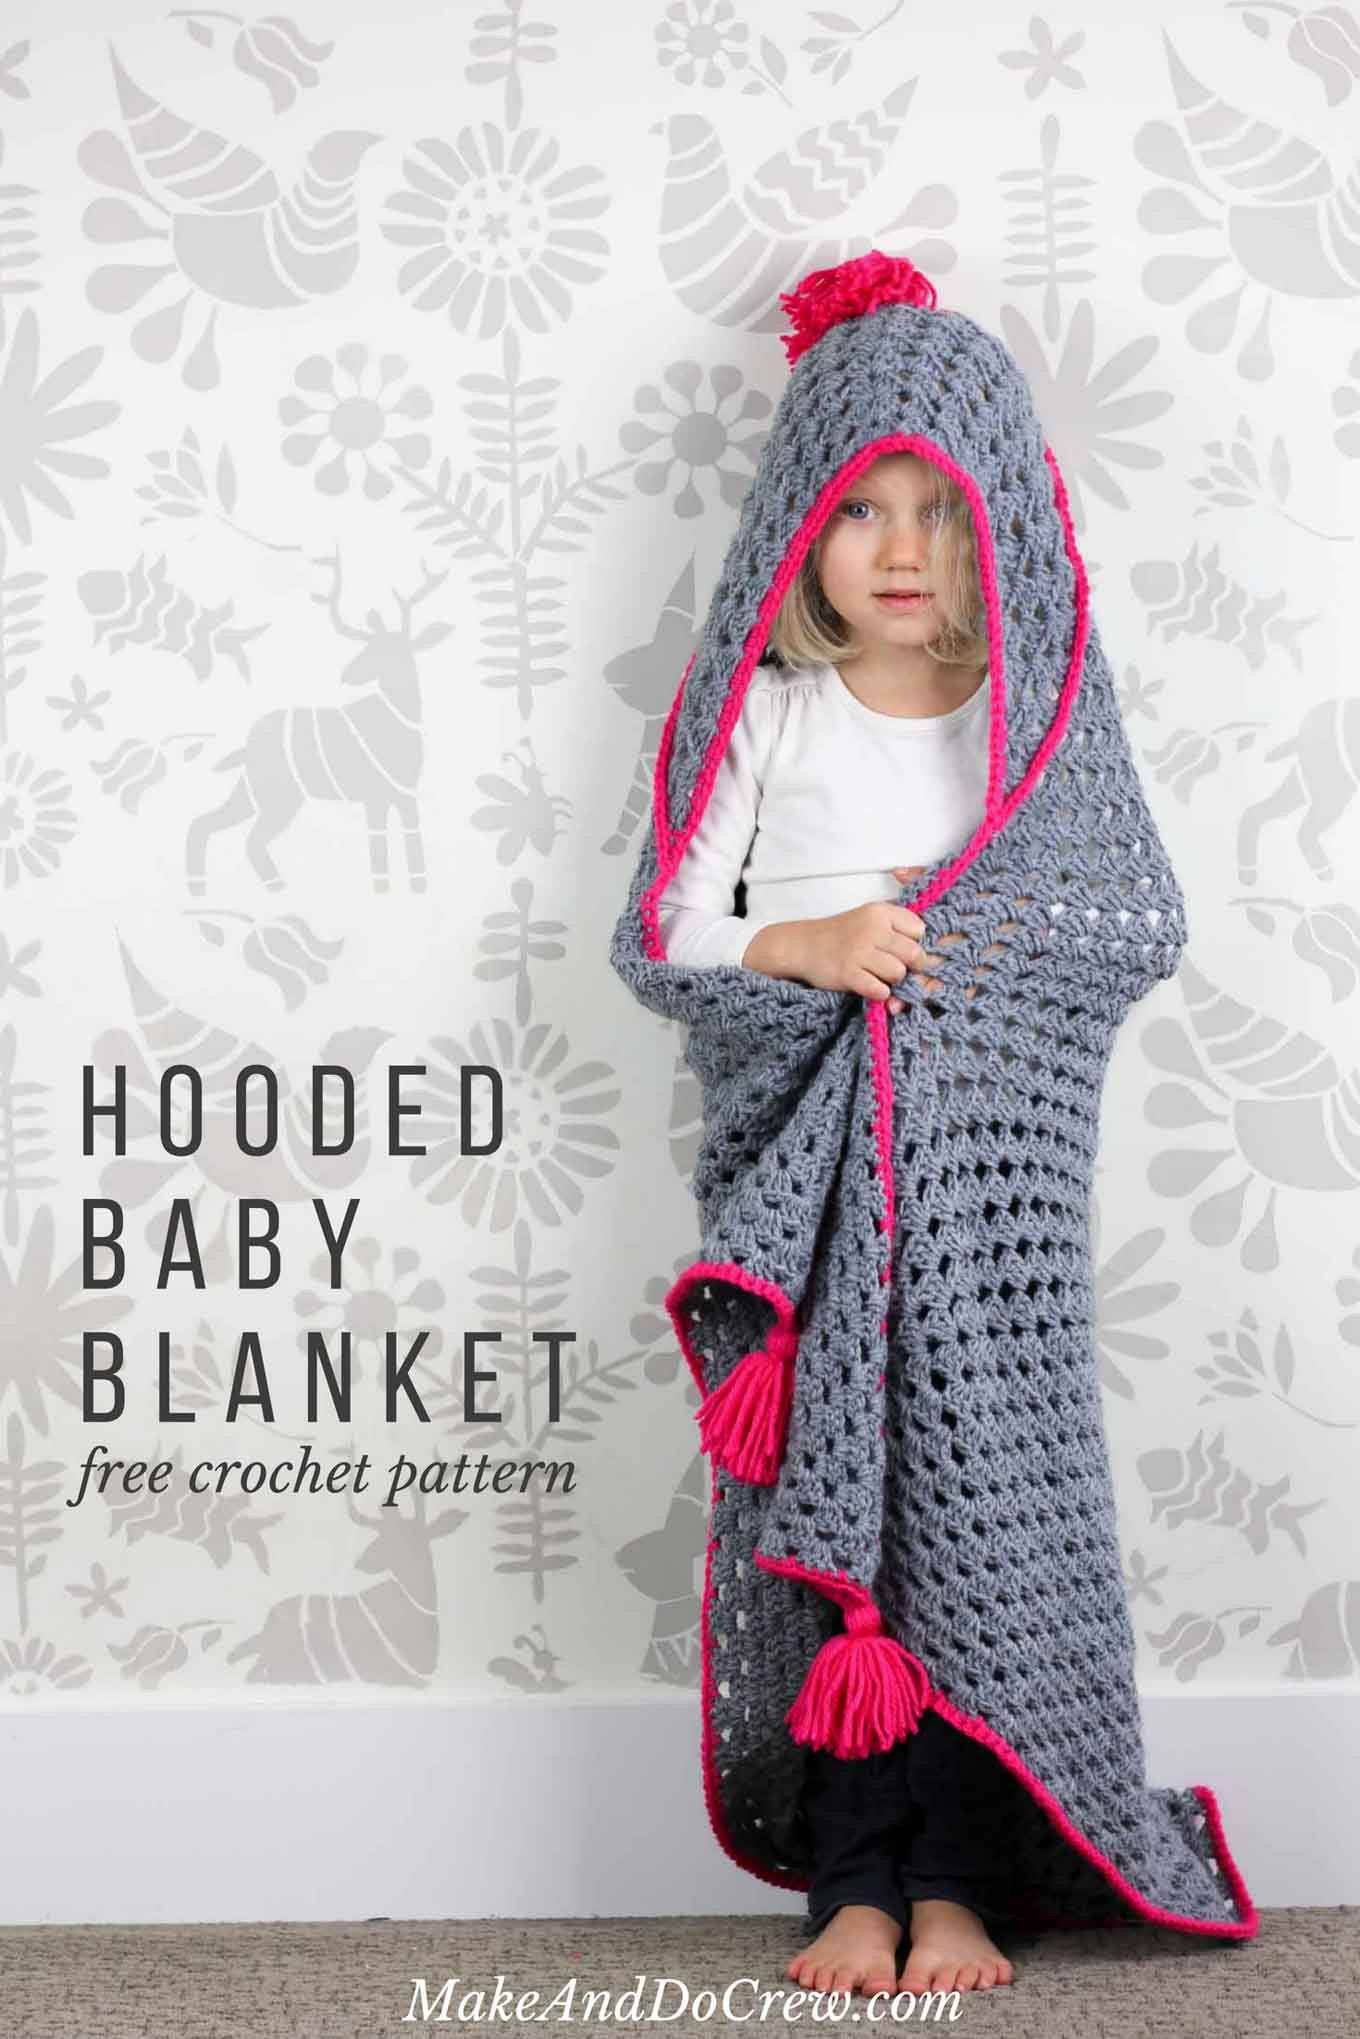 Hooded Baby Blanket Elegant Modern Crochet Hooded Baby Blanket Free Pattern for Charity Of Contemporary 45 Ideas Hooded Baby Blanket